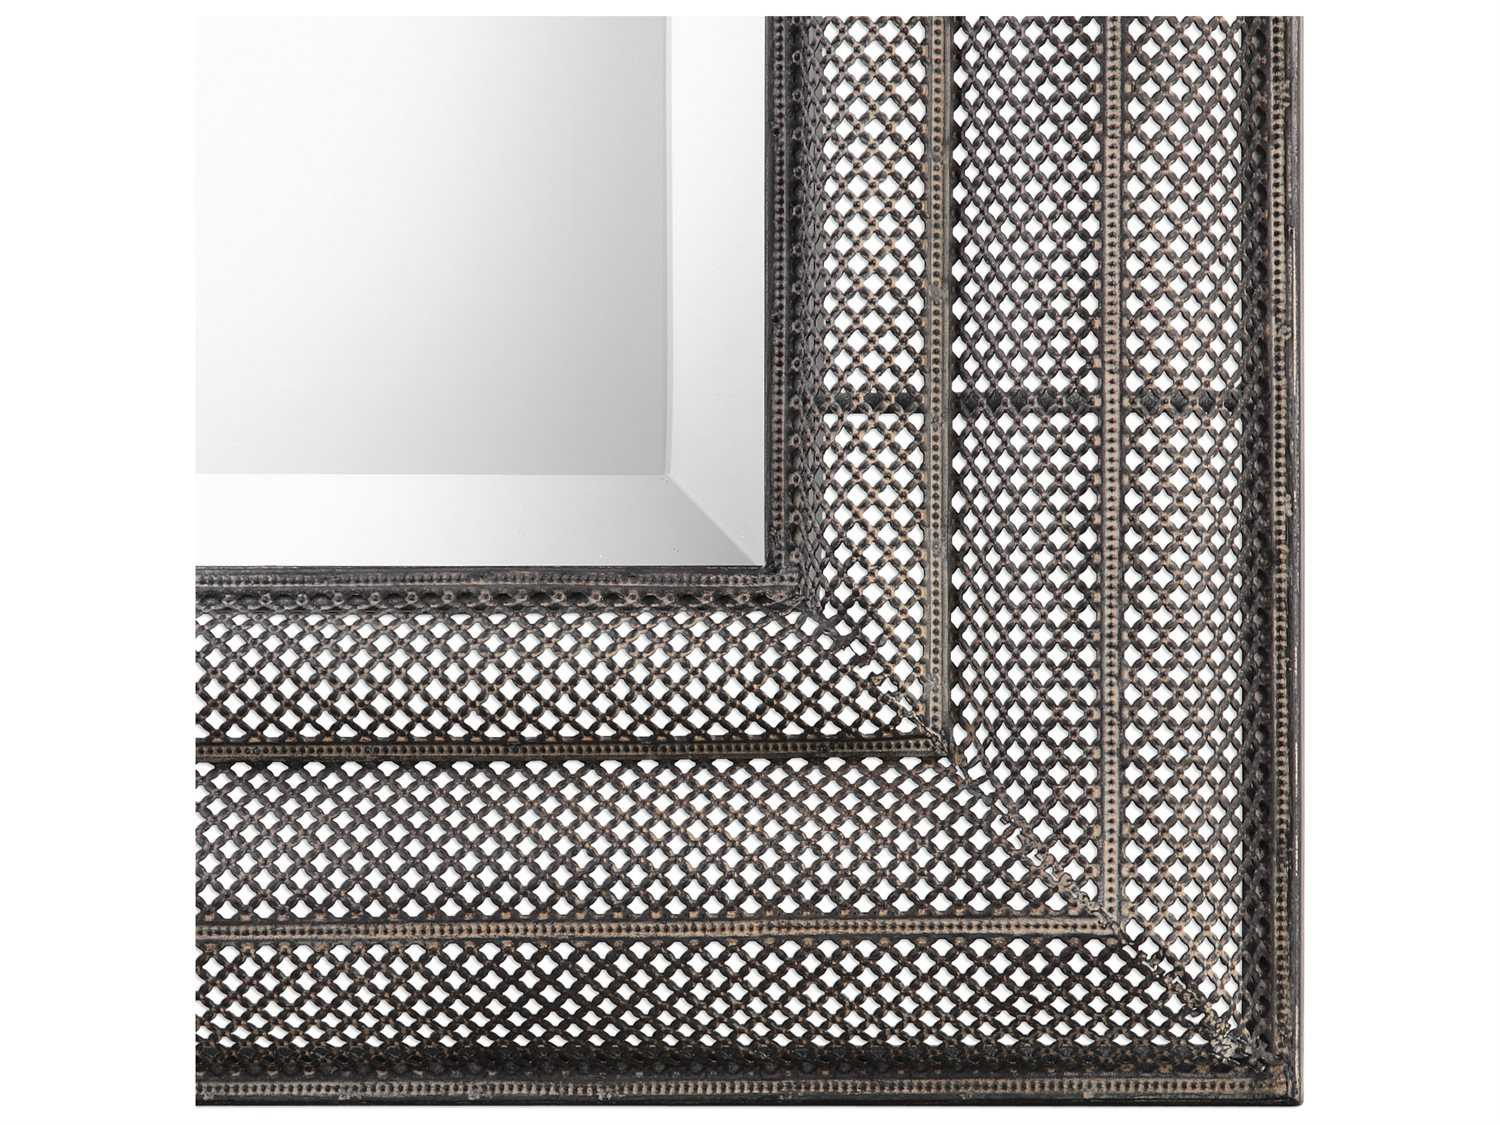 Uttermost Jim Parsons Corsica Open Metal Mirror UT09111 : UT091113zm from www.luxedecor.com size 1500 x 1125 jpeg 223kB